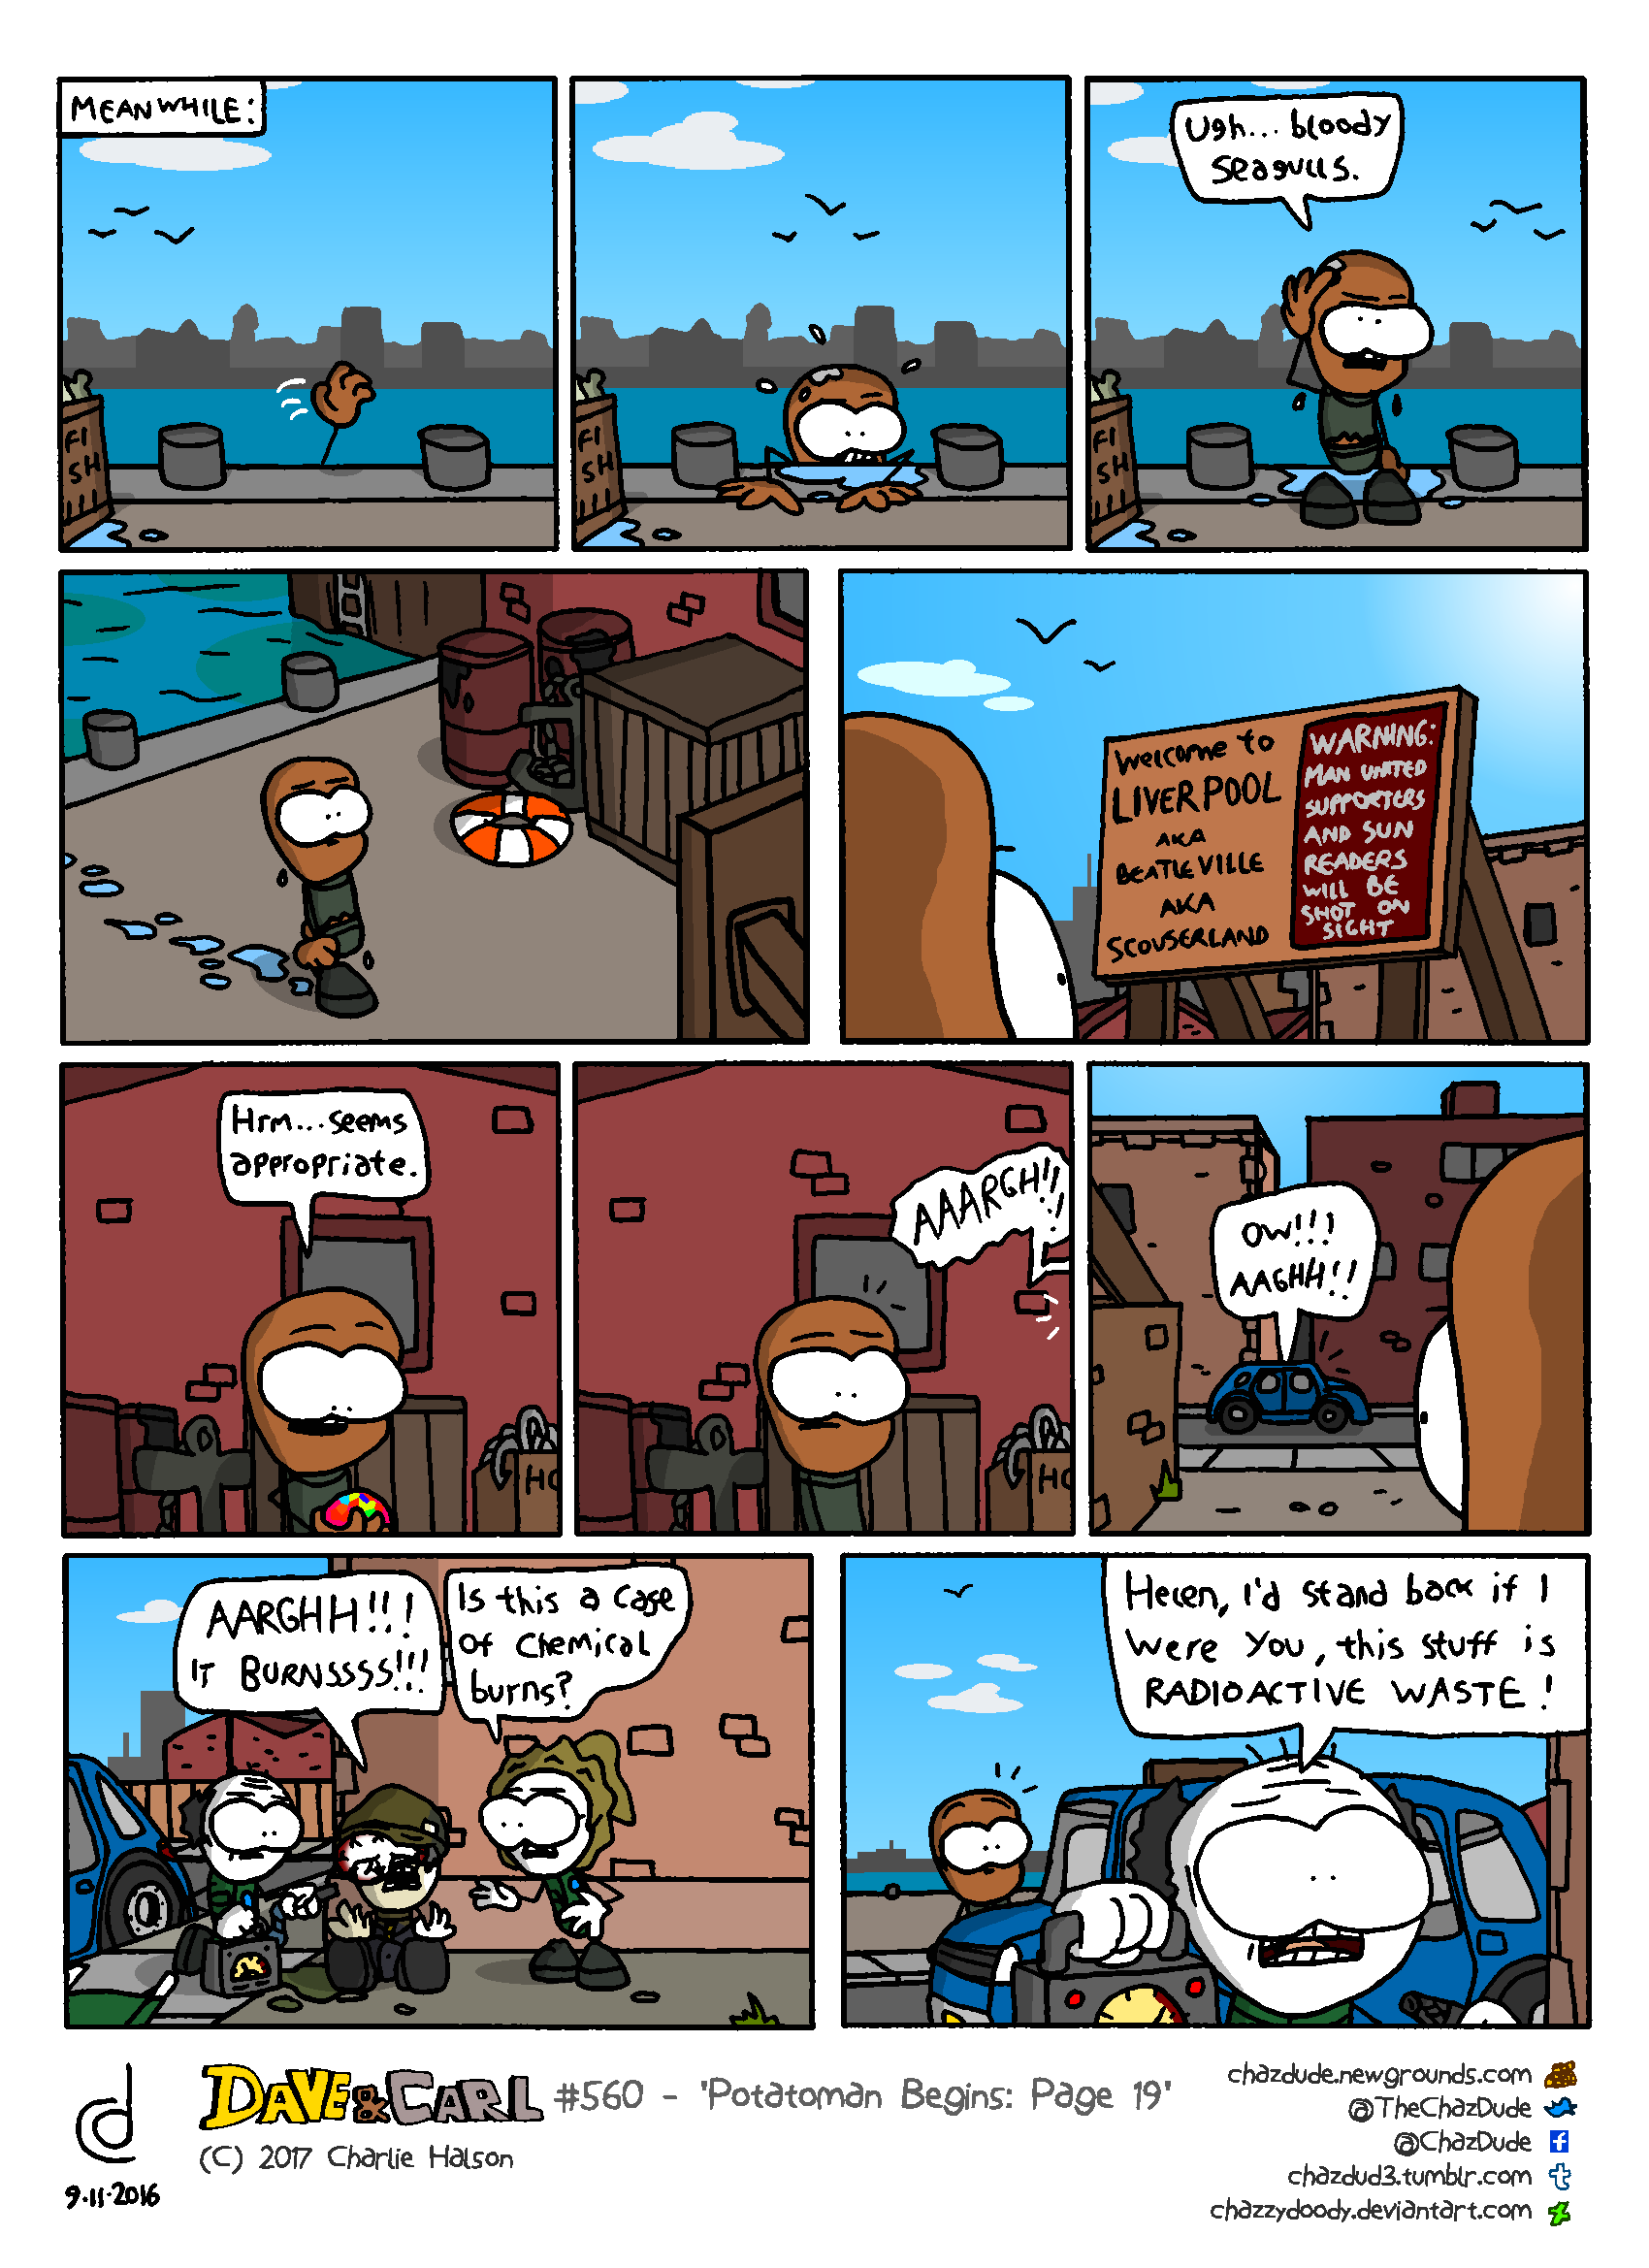 Potatoman Begins: Page 19